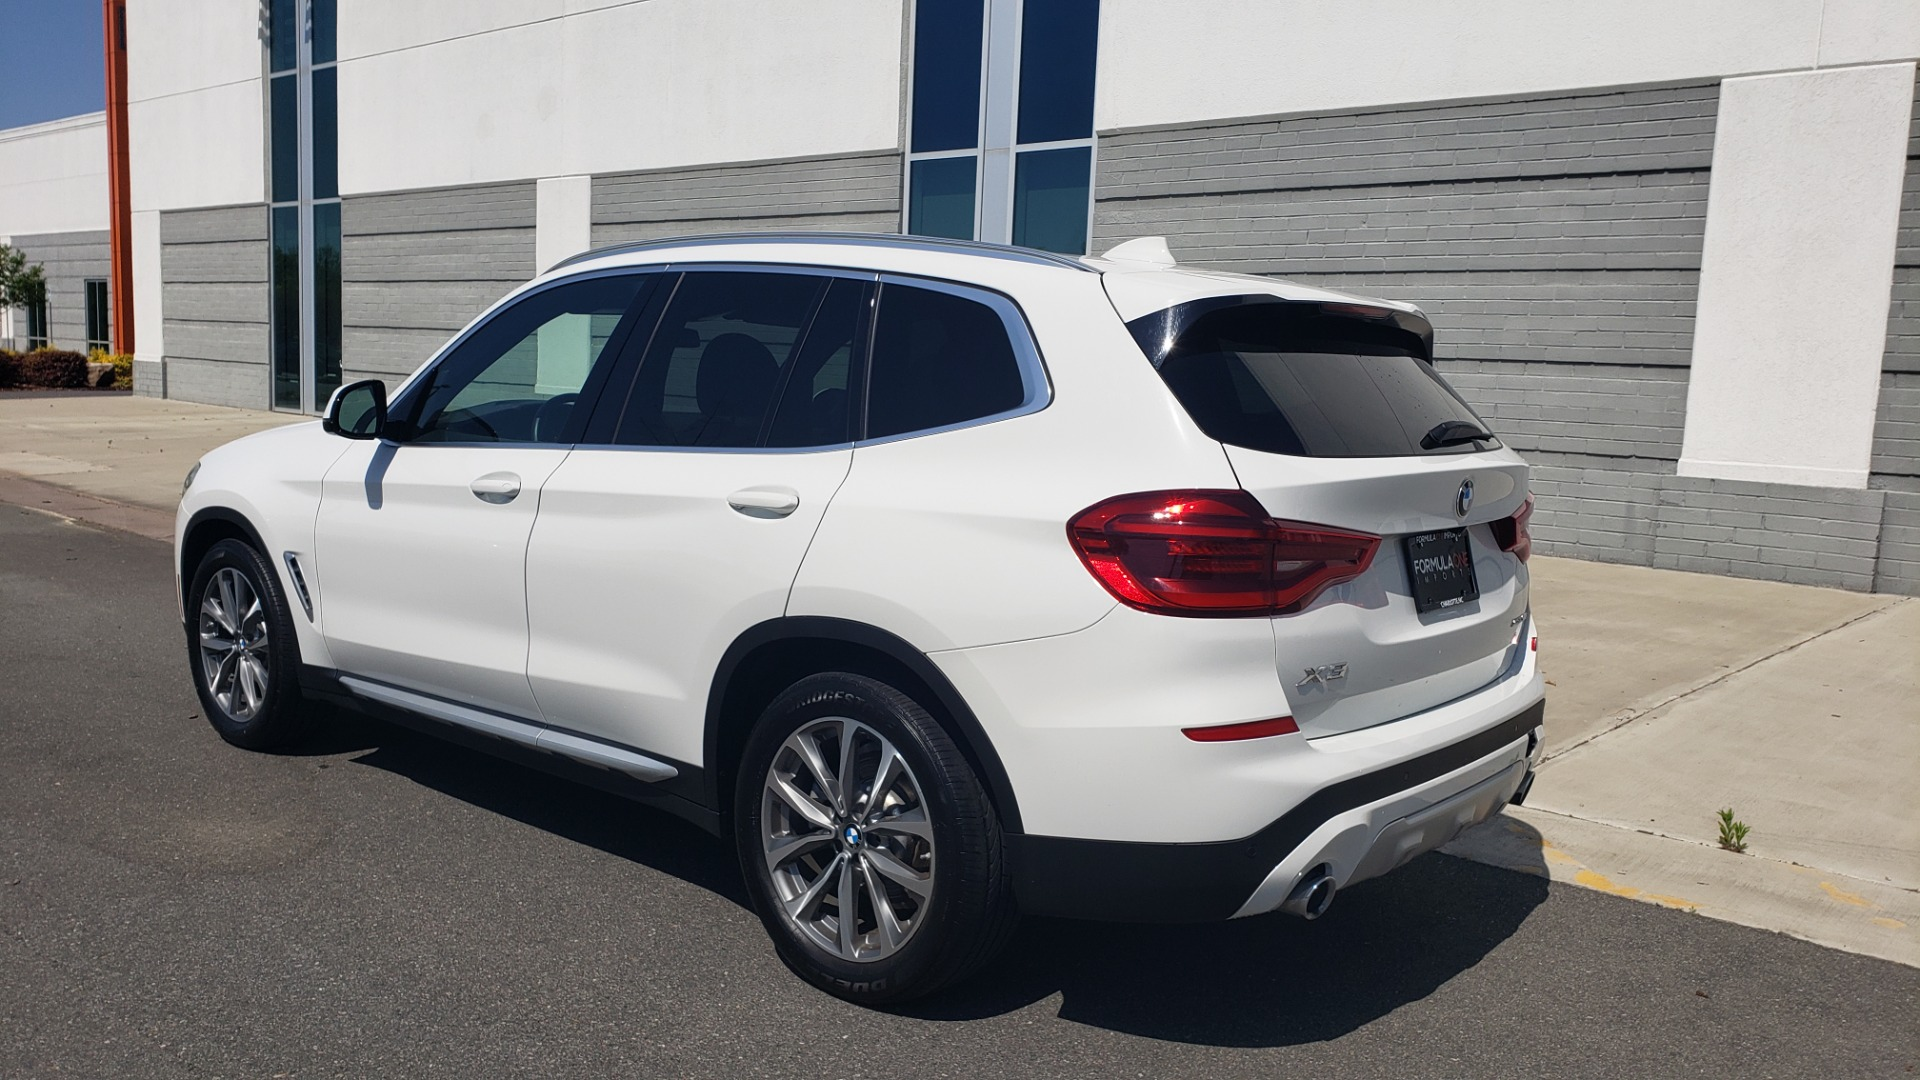 Used 2018 BMW X3 XDRIVE30I / CONV PKG / PANO-ROOF / HTD STS / REARVIEW for sale $33,995 at Formula Imports in Charlotte NC 28227 5